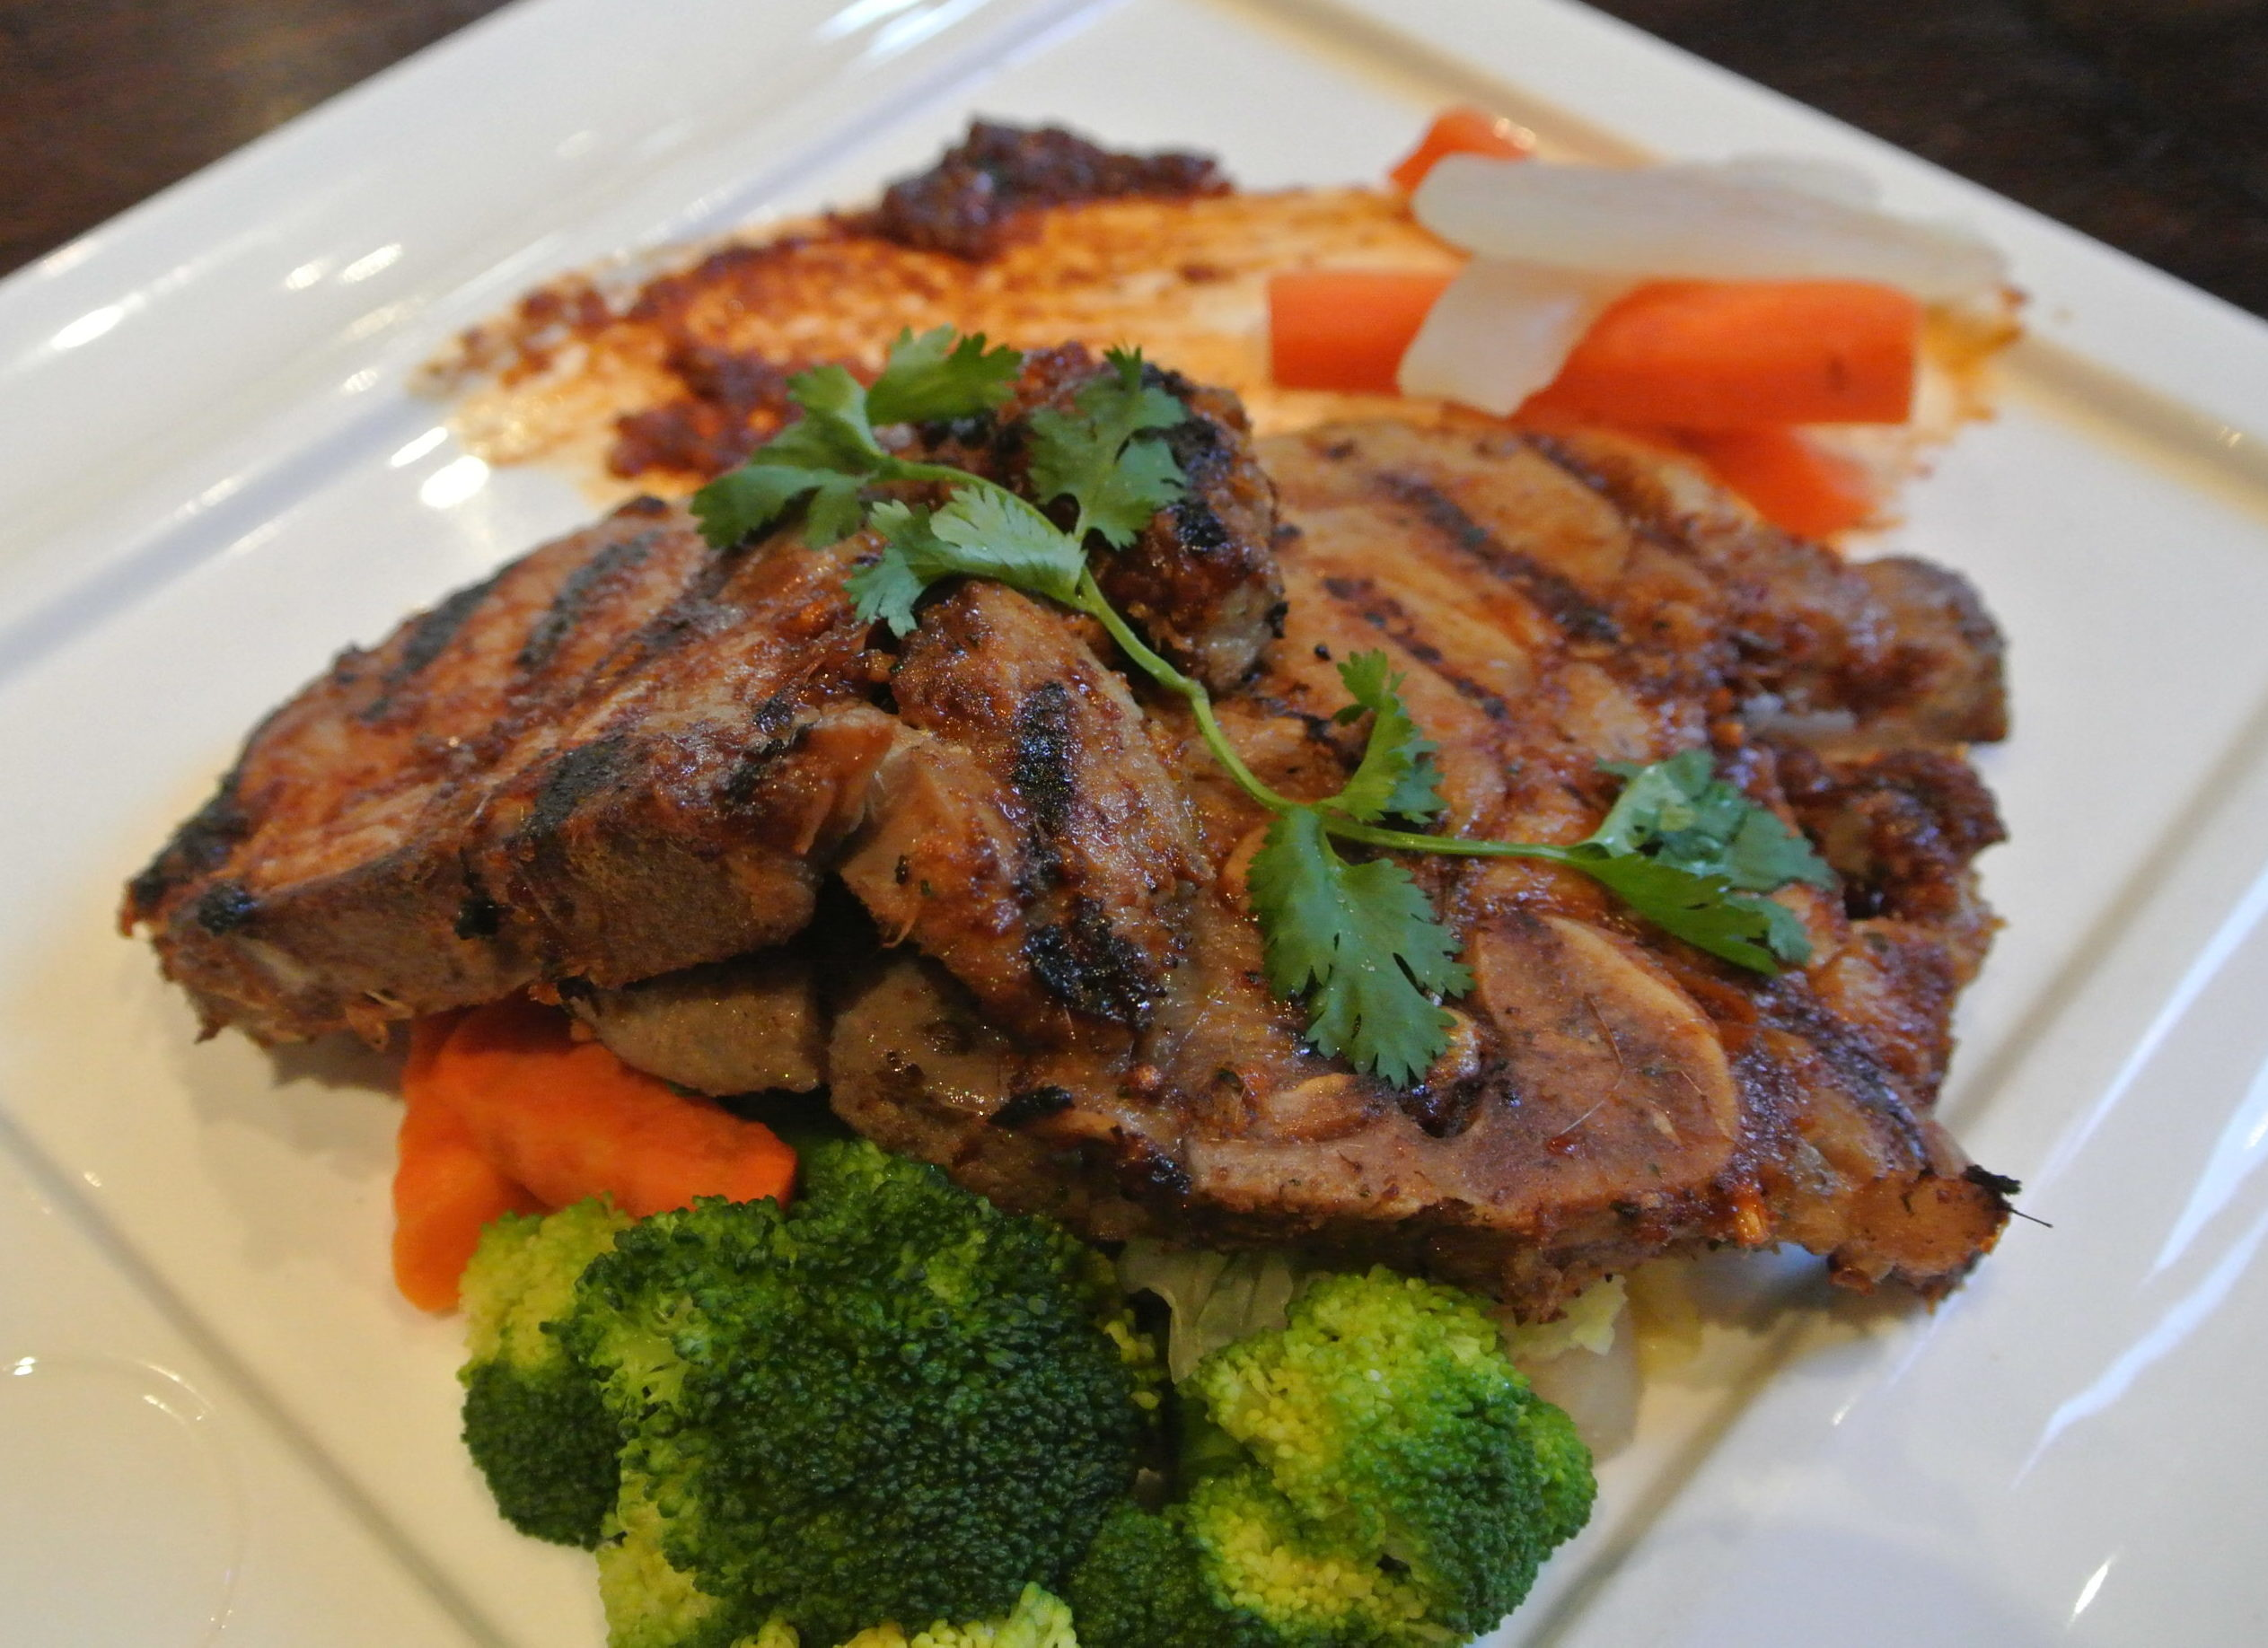 LEMONGRASS PORK CHOP